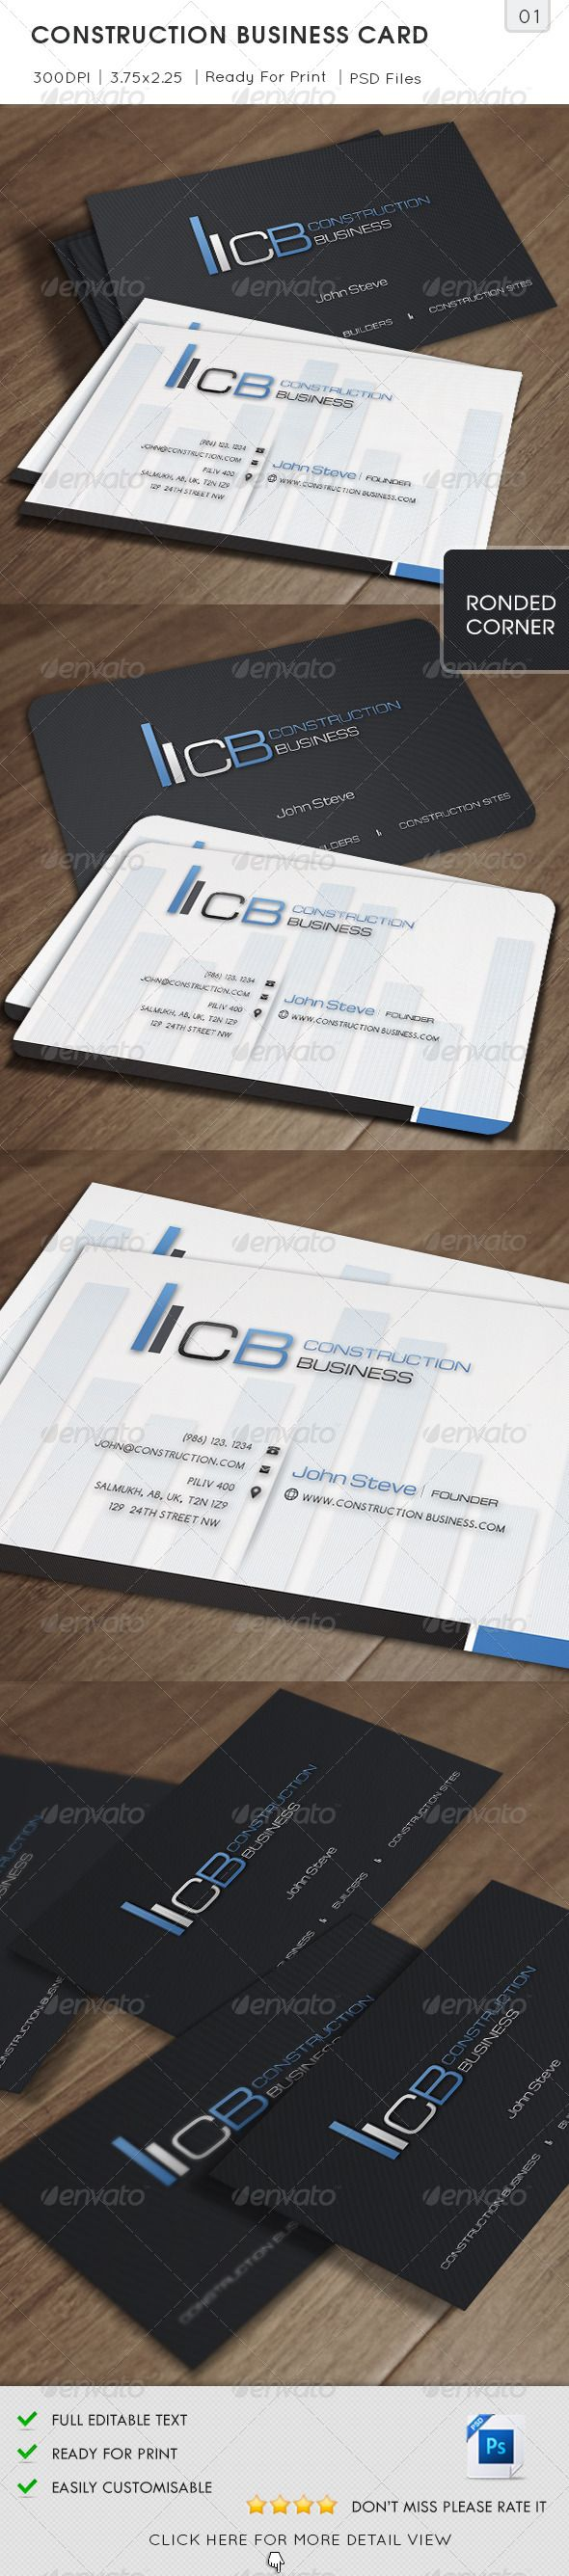 Construction Business Card #GraphicRiver Construction Business Card is especially for a Corporate Constructions or for any other Professionally and Civil Industrial type of Business. 2 Sided Business Card easy to modify. Detail : Fully Layered PSD files Fully Customizable and Editable CMYK Setting 300 DPI High Resolution Bleed Size: 3.75×2.25 in (1/8 in bleeds) (95.25×57.15 mm) Standard Cut Size: 3.5×2 in (89×51 mm) Print Ready Format Horizontal Orientation Font Used: Michroma, Comfortaa…